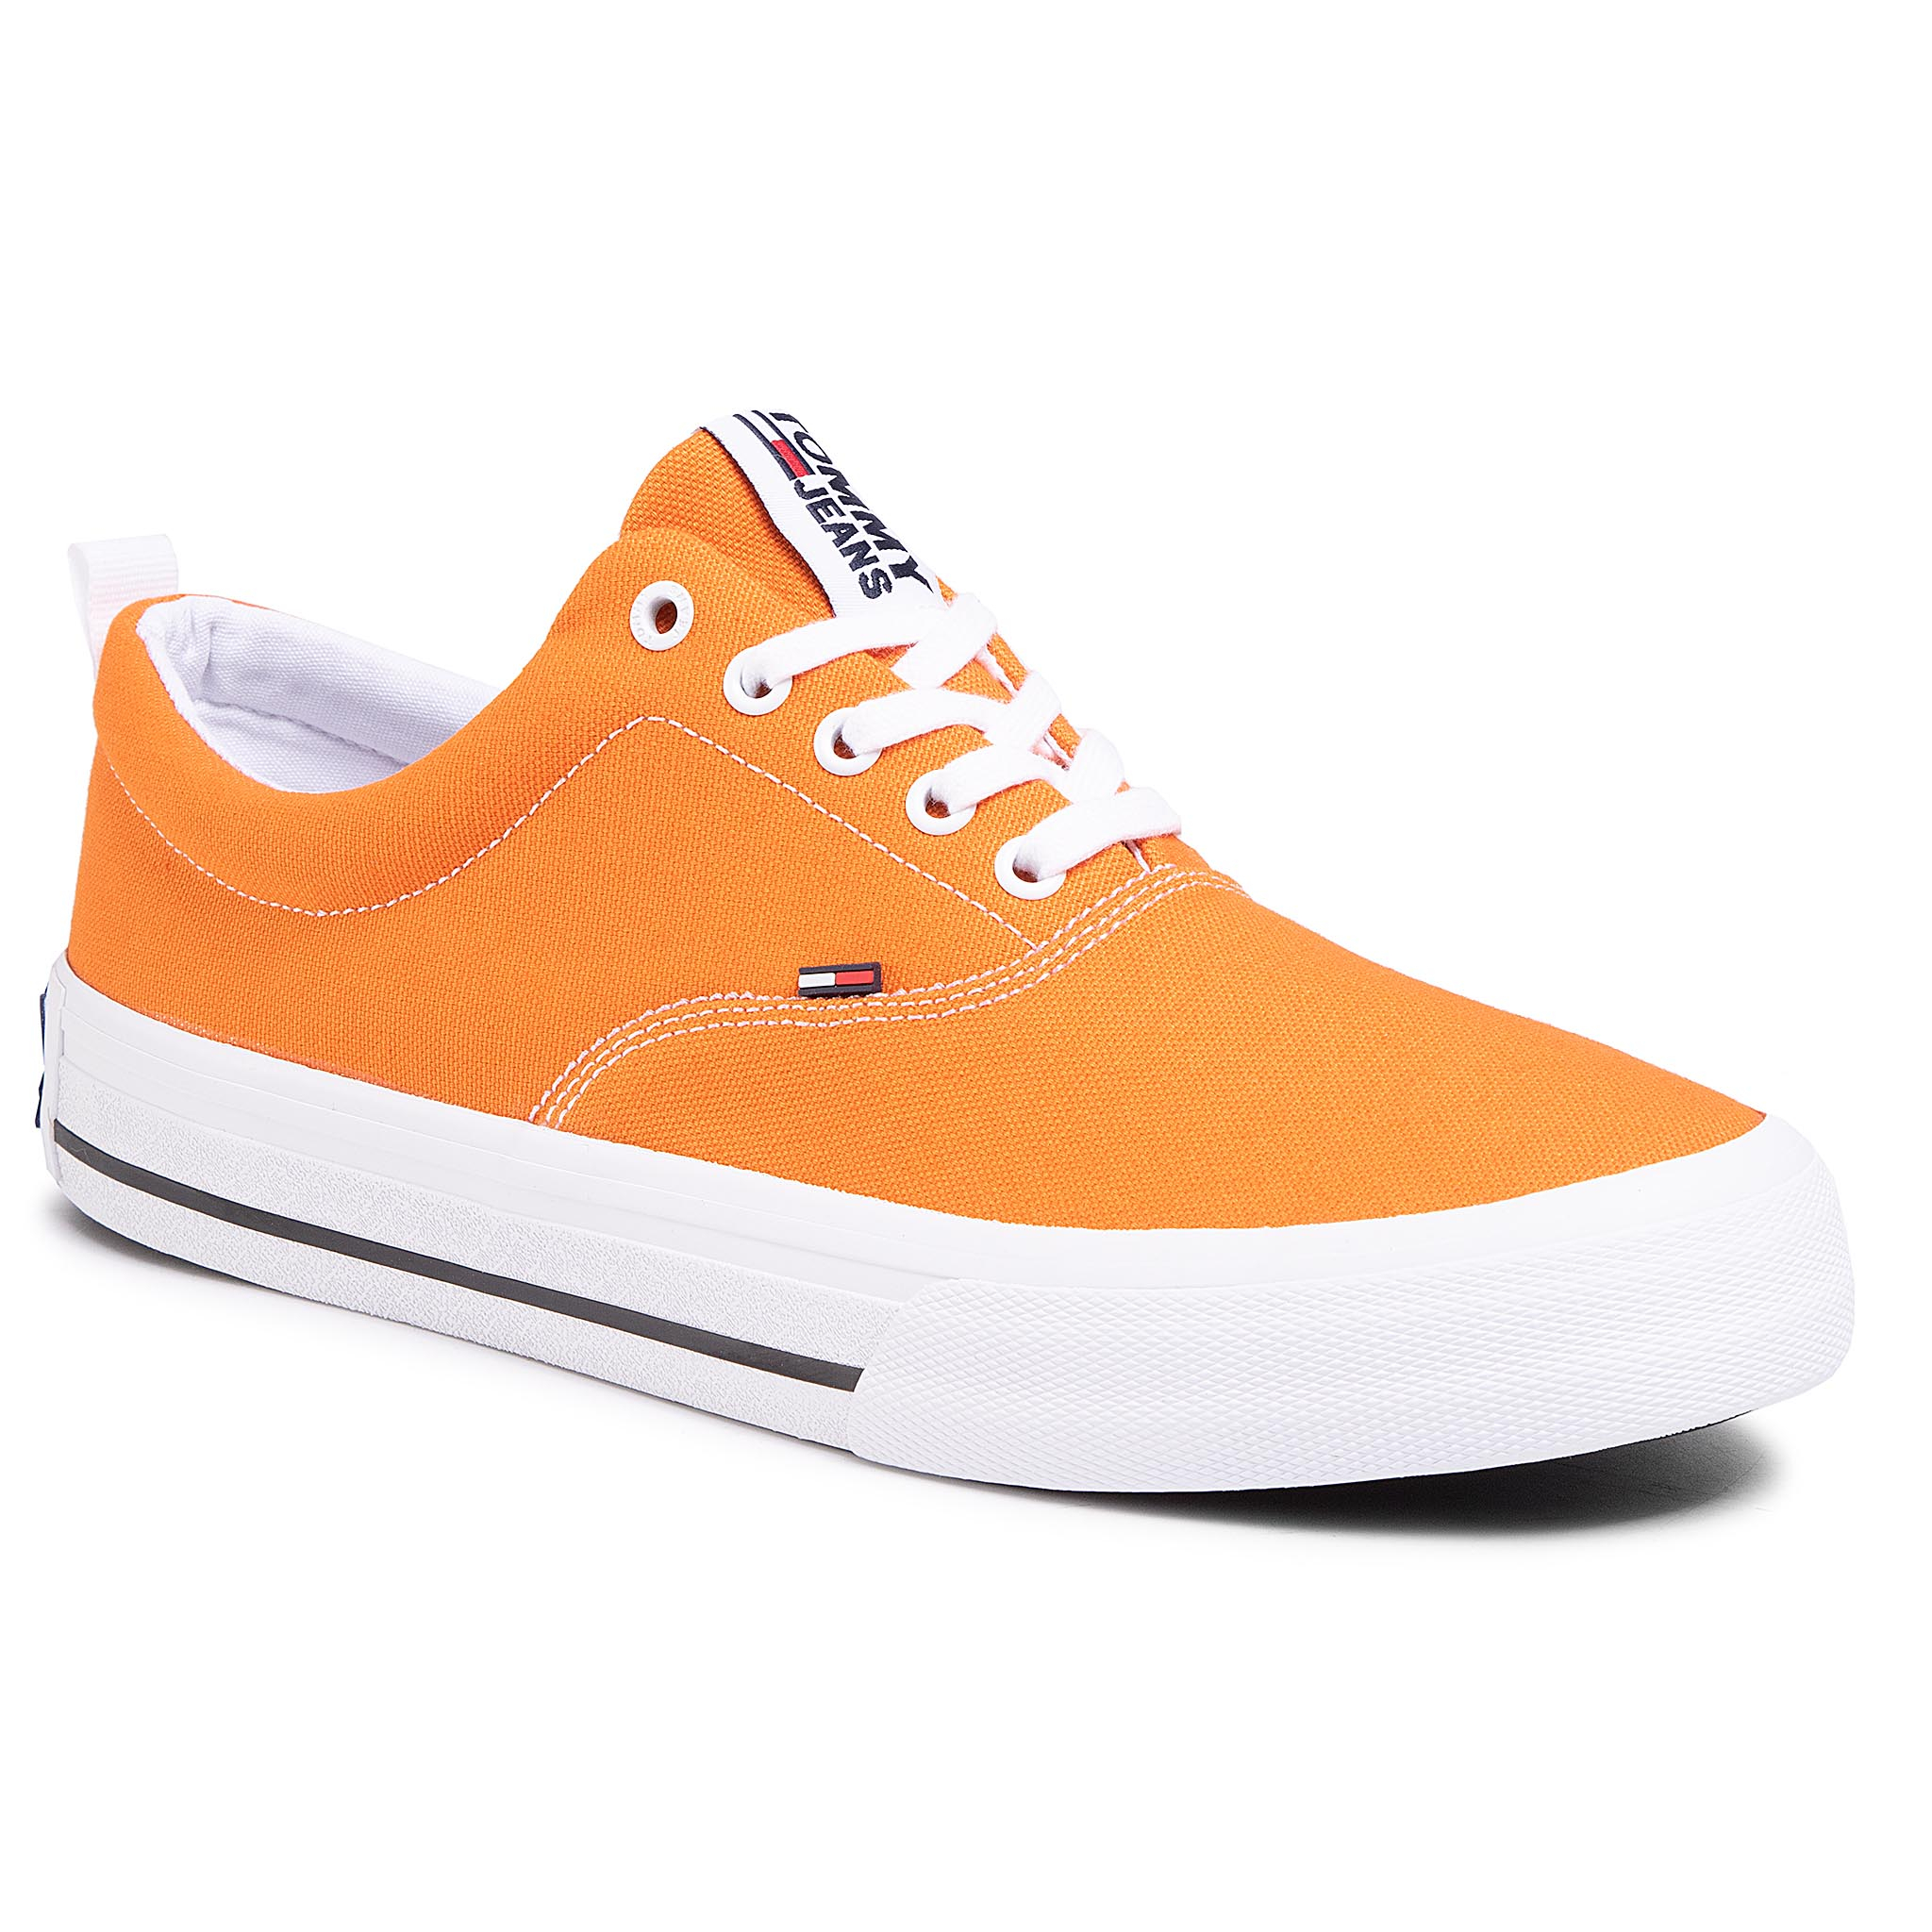 Teniși Tommy Jeans - Classic Low Tommy Jeans Sneaker Em0em00405 Paradise Orange Sfa imagine epantofi.ro 2021